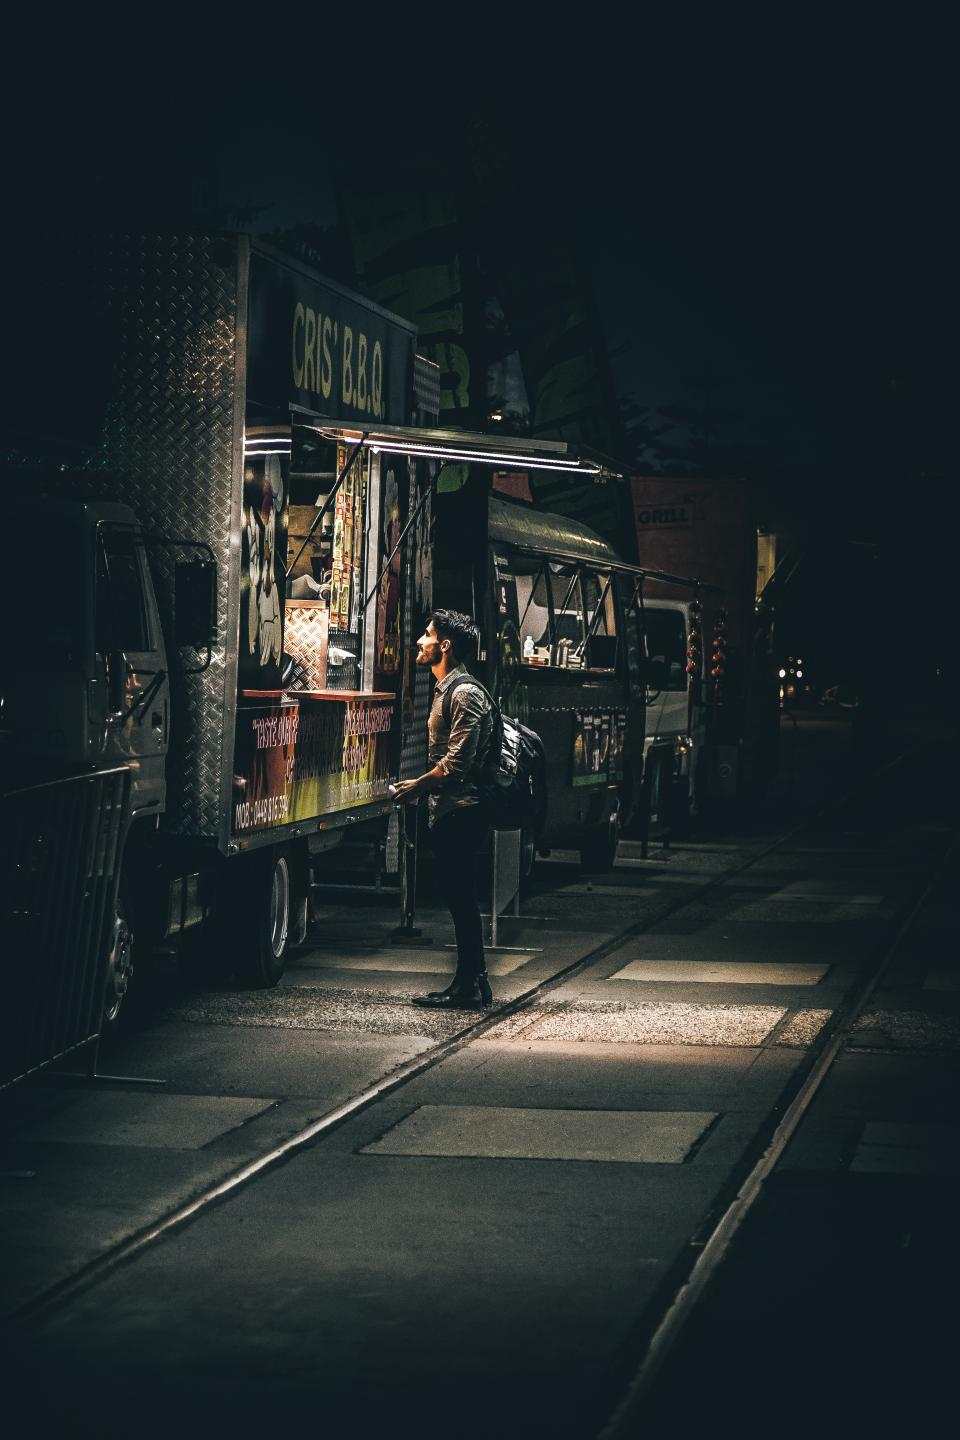 people man vendor store shop dark night alone truck